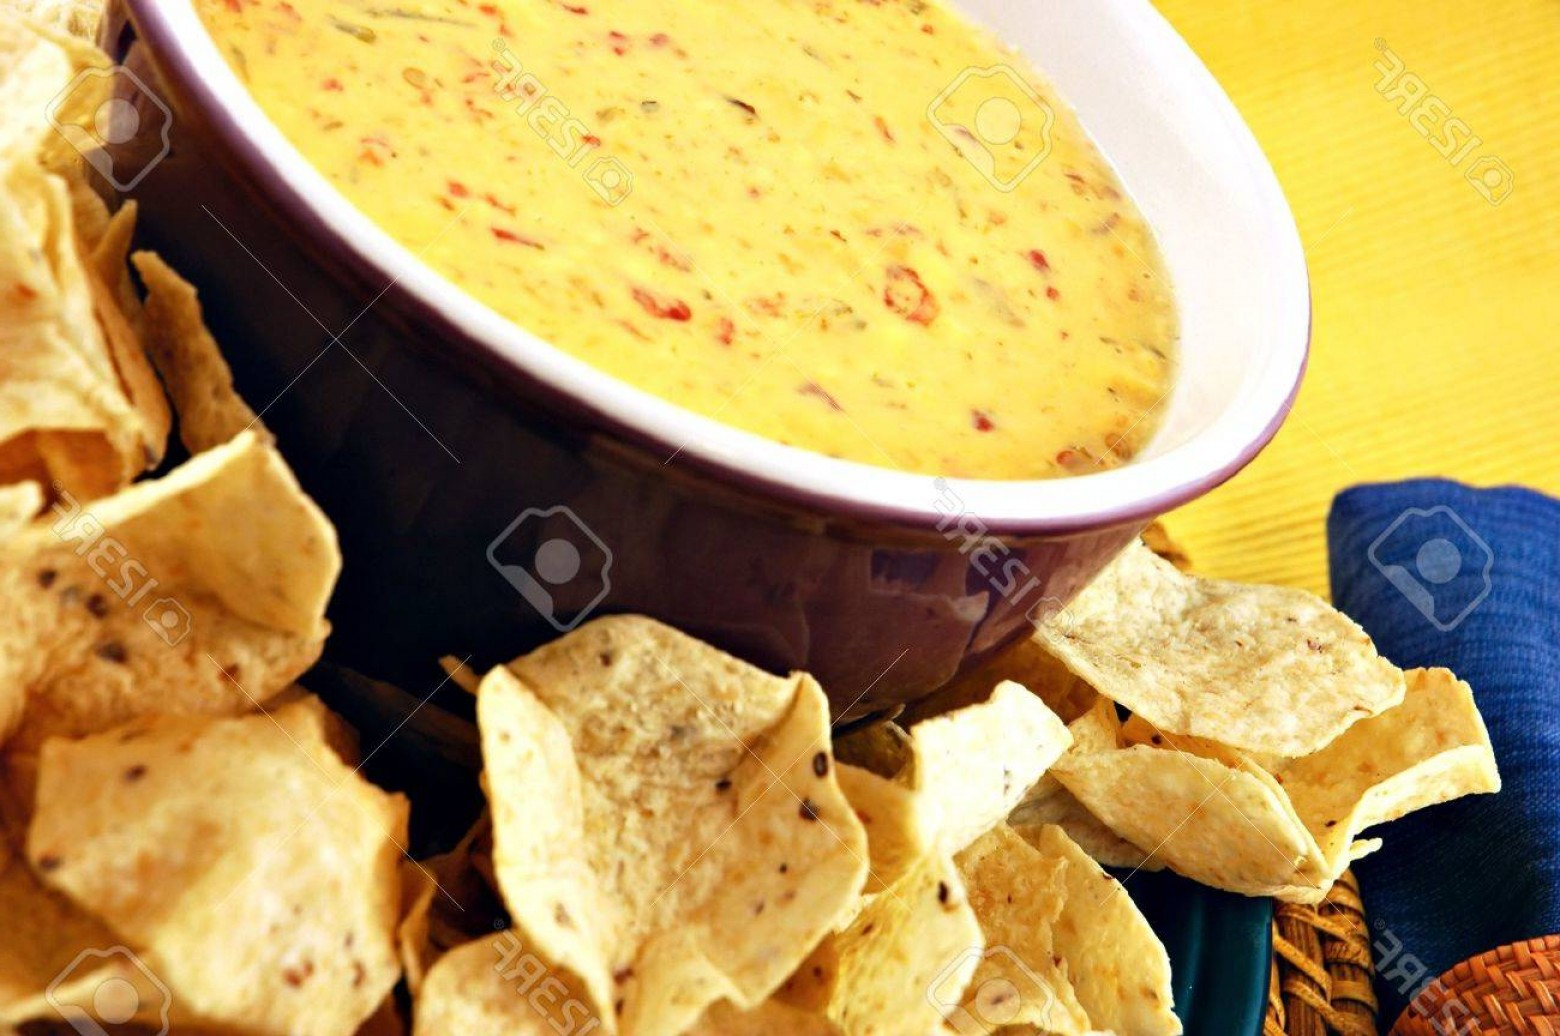 Chips Queso Vector: Photobowl Of Warm Queso Cheese Dip With A Plate Of Tortilla Chips